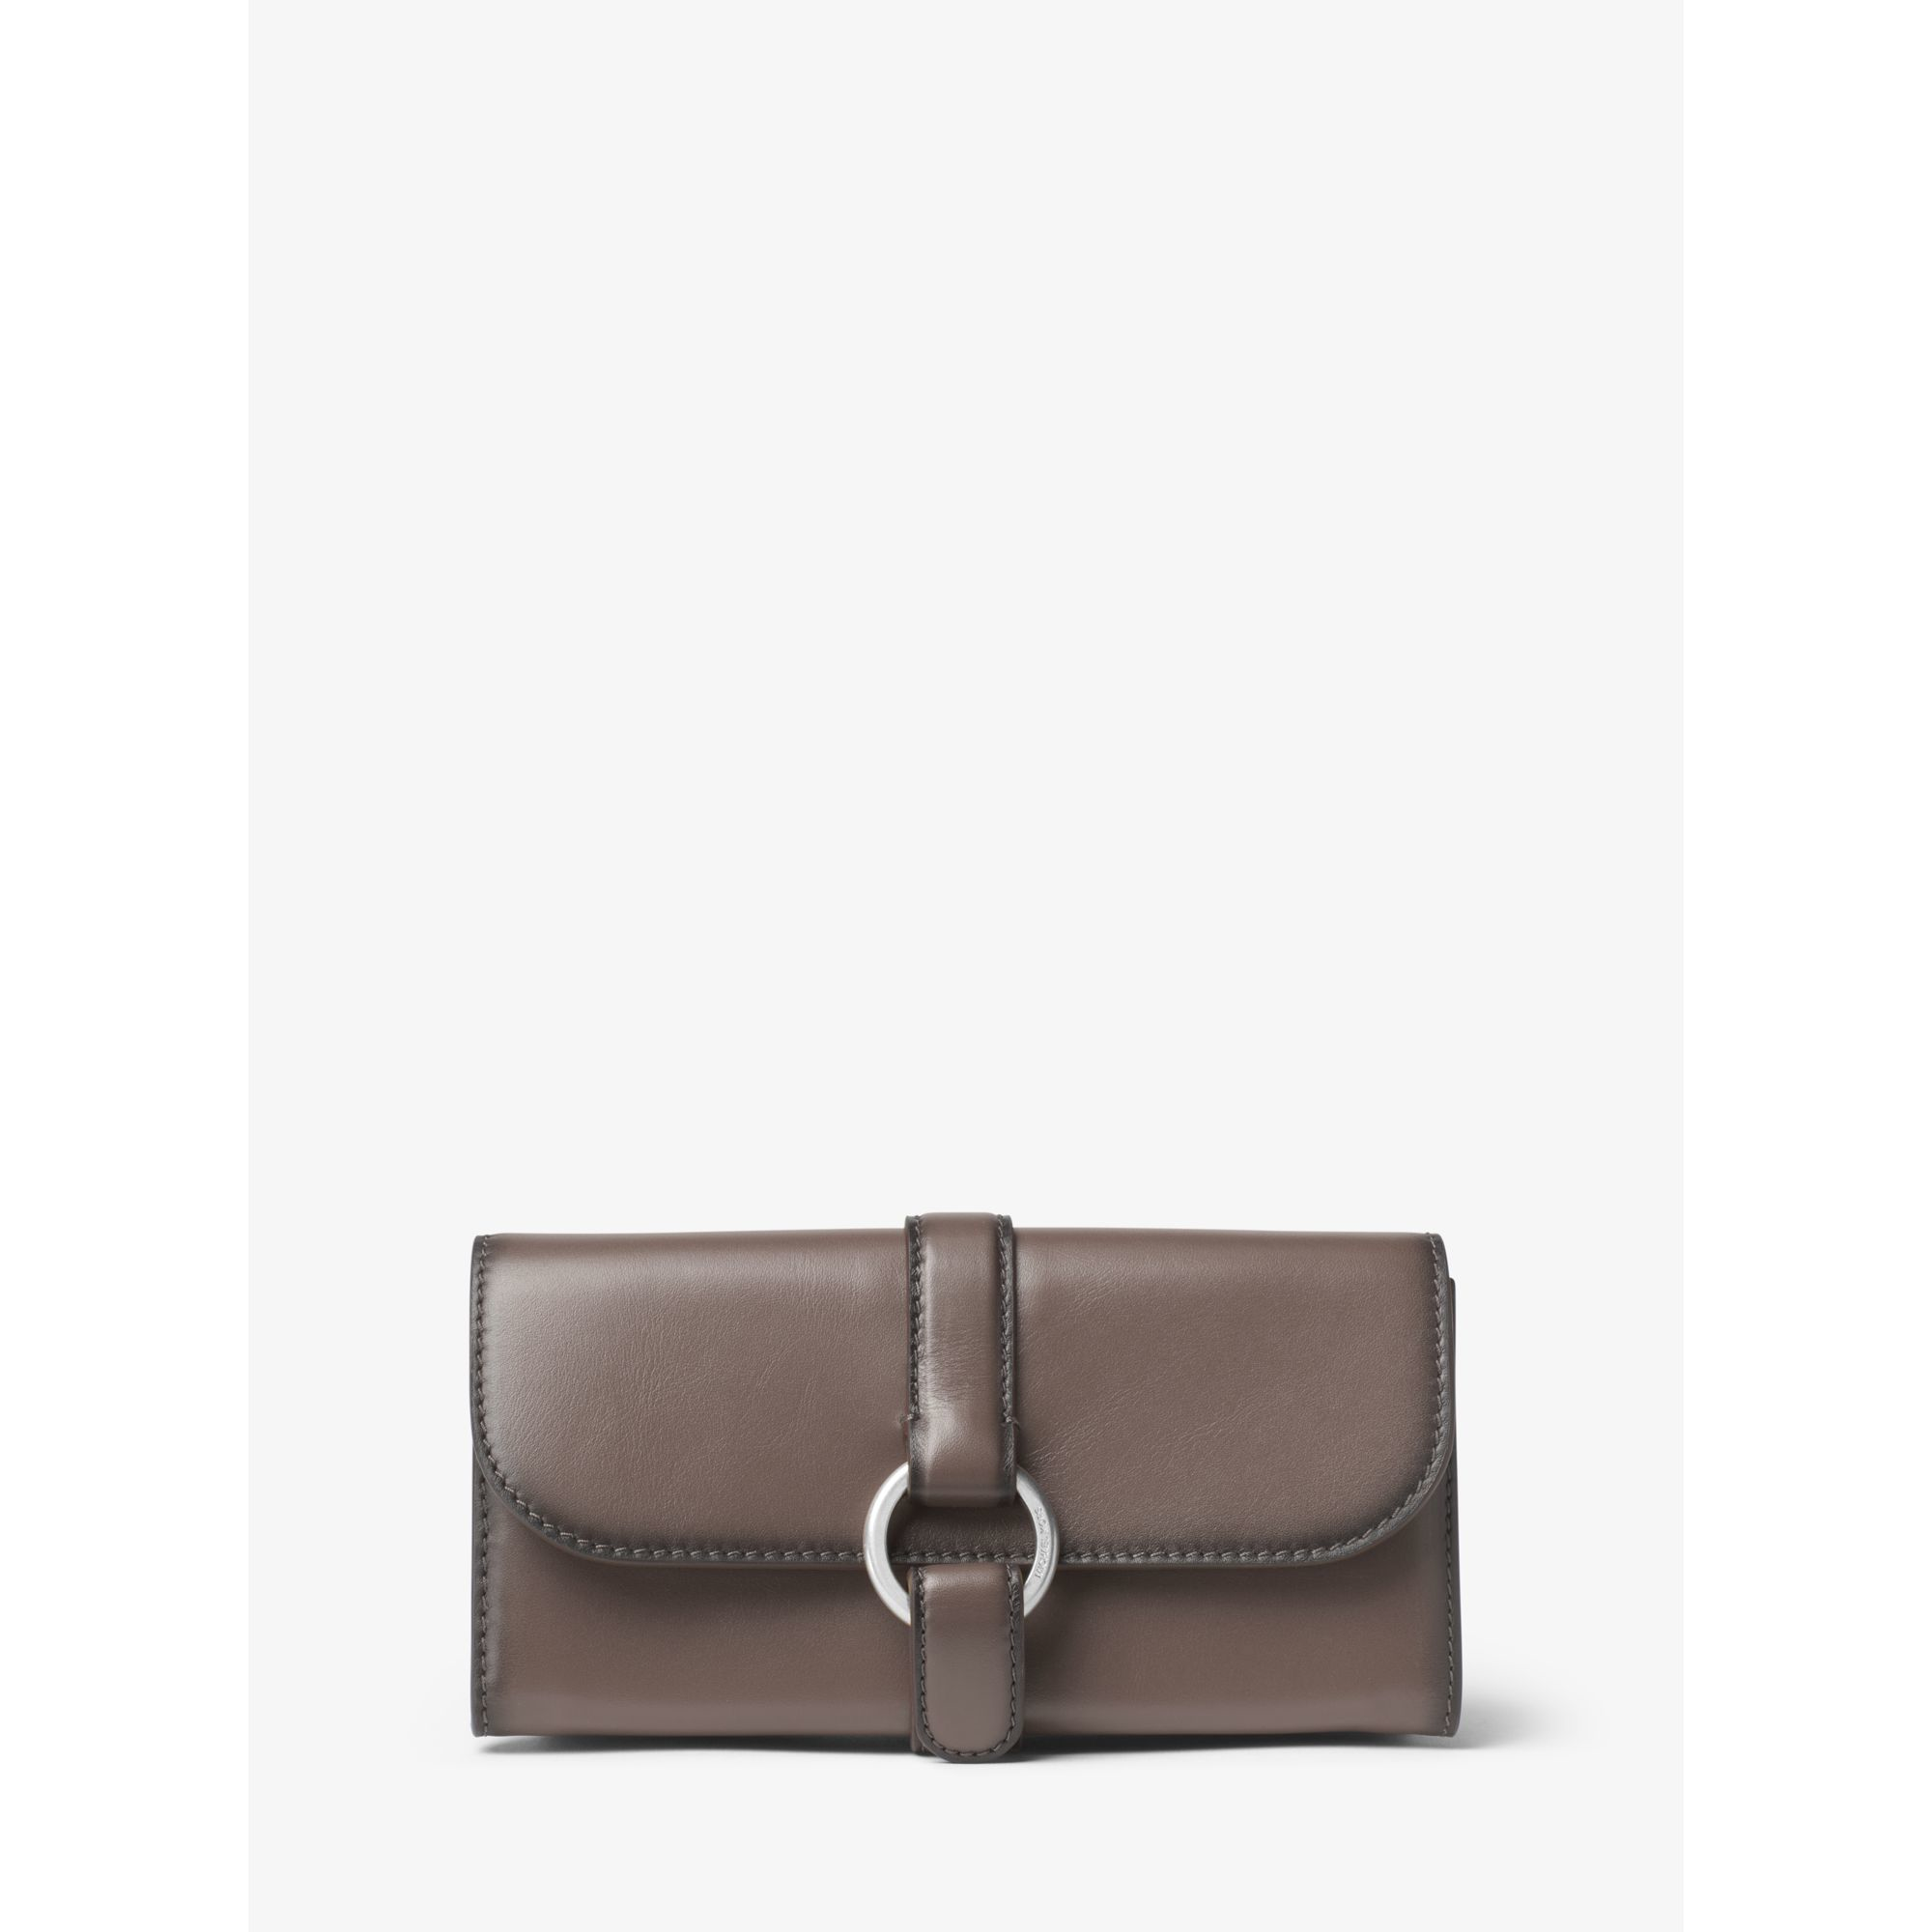 b16d70bc6b91ff Michael Kors Quincy Large Leather Wallet in Brown - Lyst